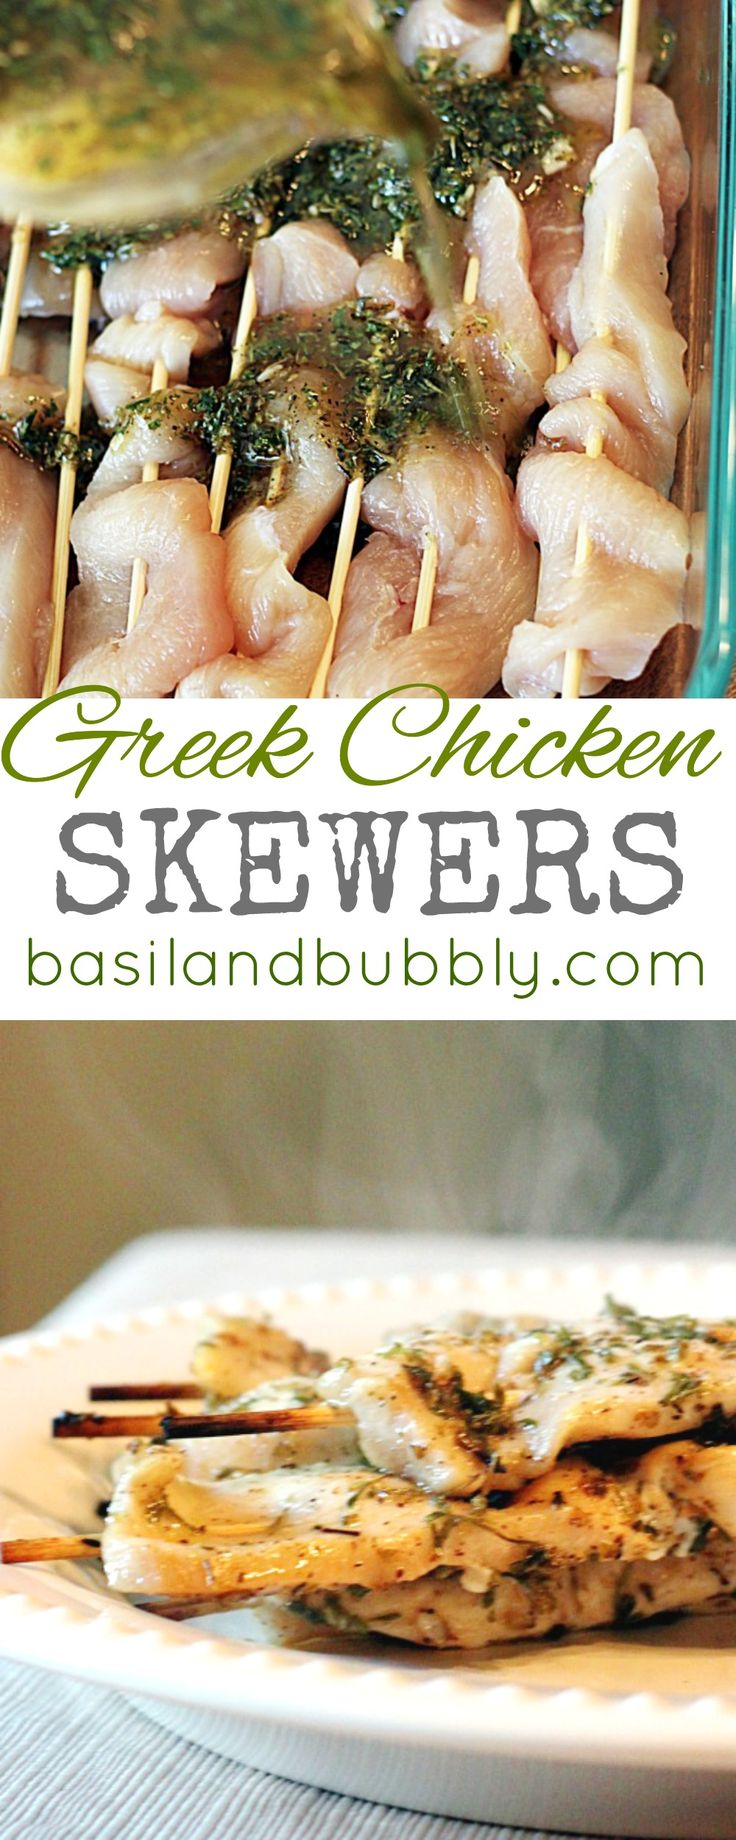 Another great healthy boneless, skinless chicken recipe that's clean from Basil and Bubbly: Greek Chicken Skewers